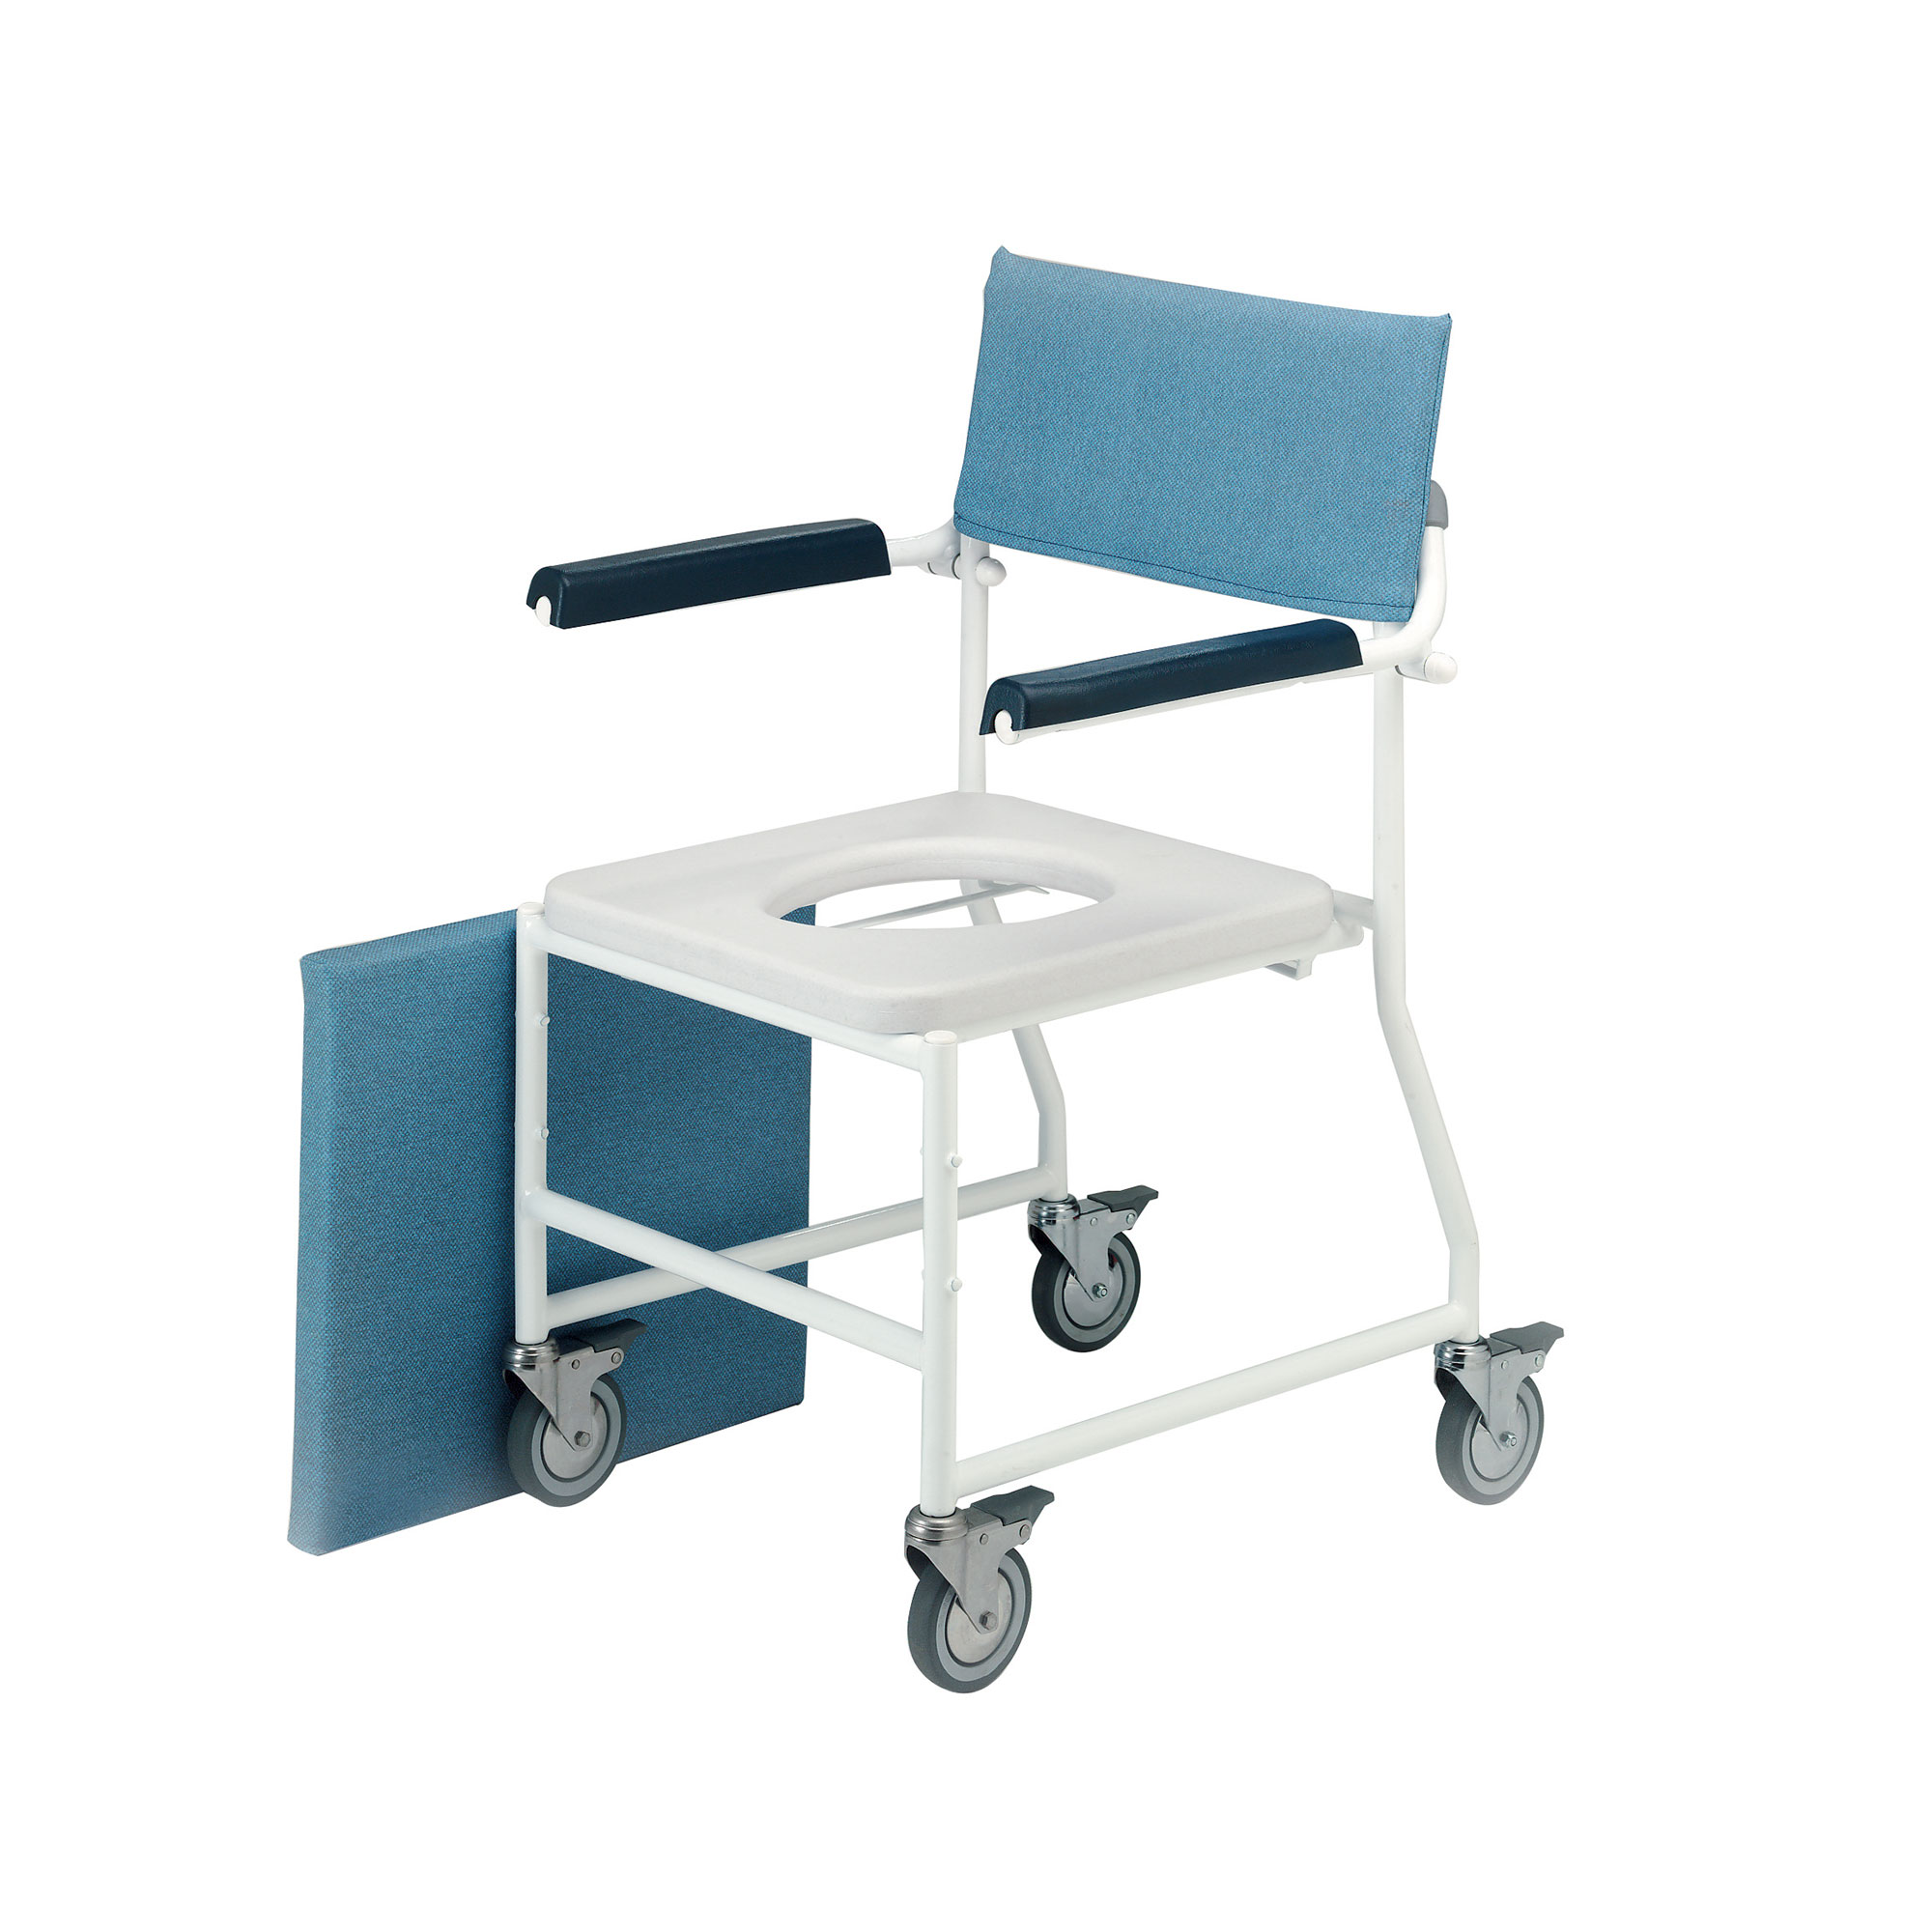 shower chair with wheels and removable arms folding lounge canada 4140 4bc dual mobile roma medical